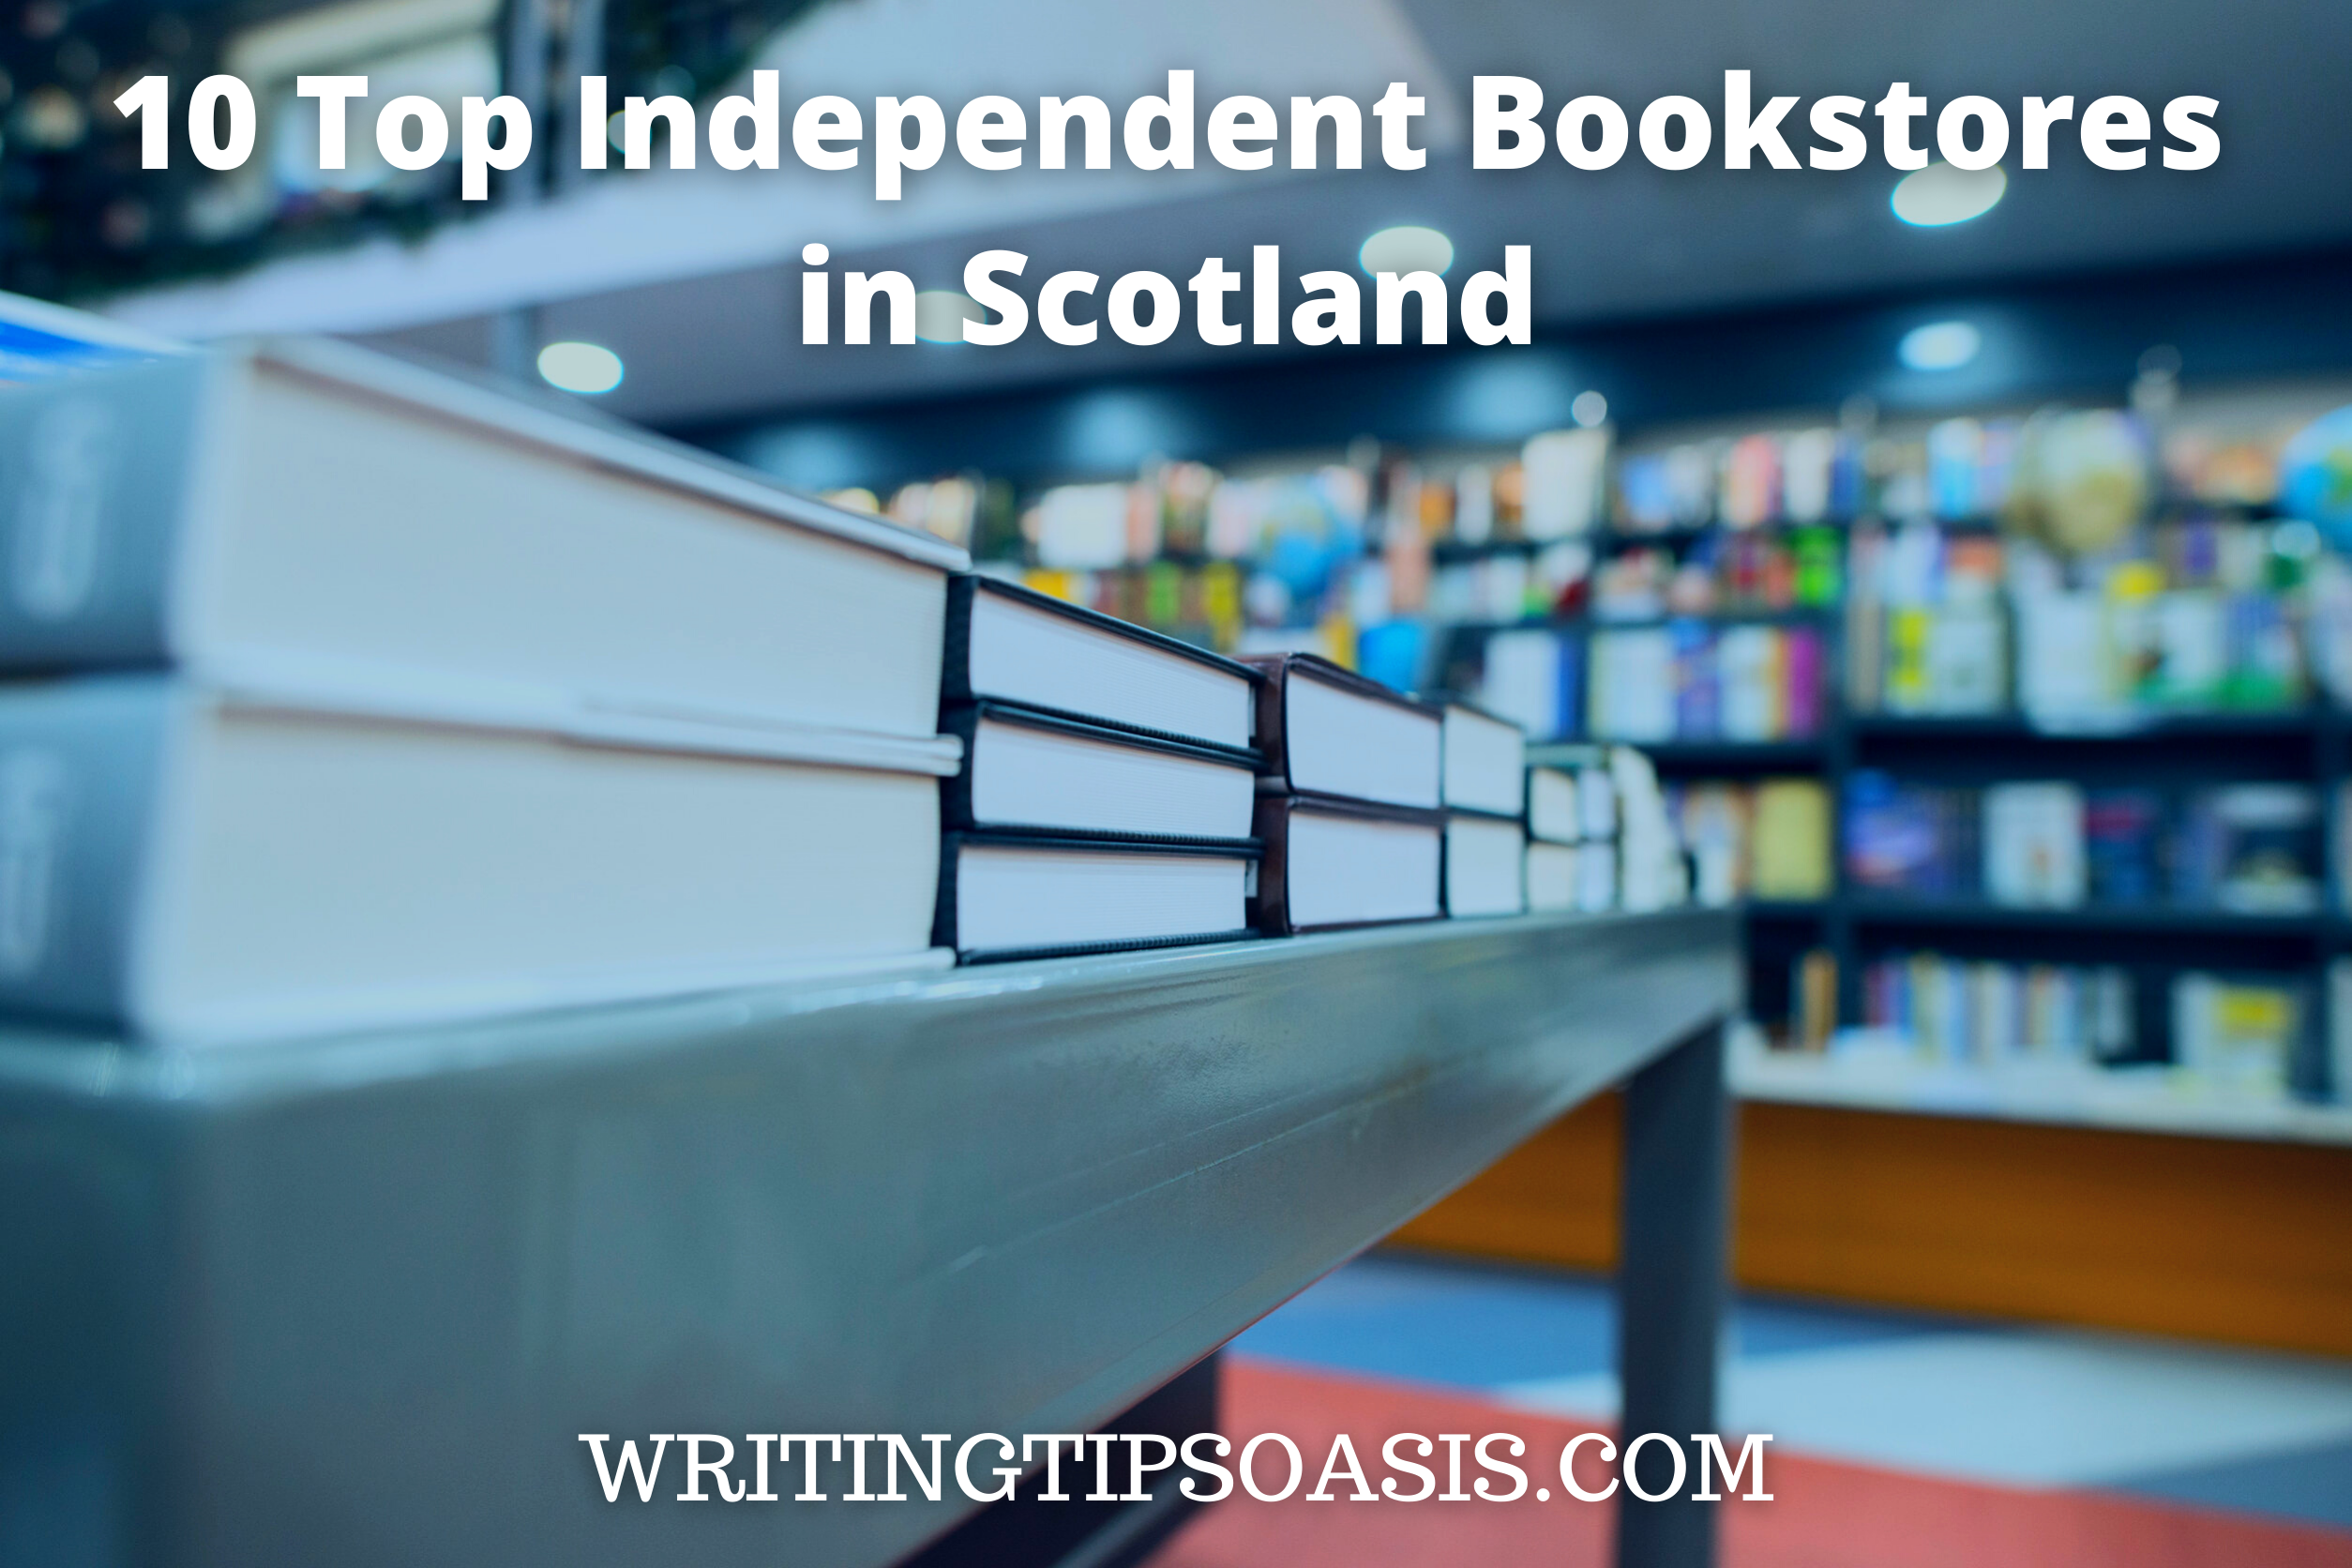 independent bookstores in Scotland